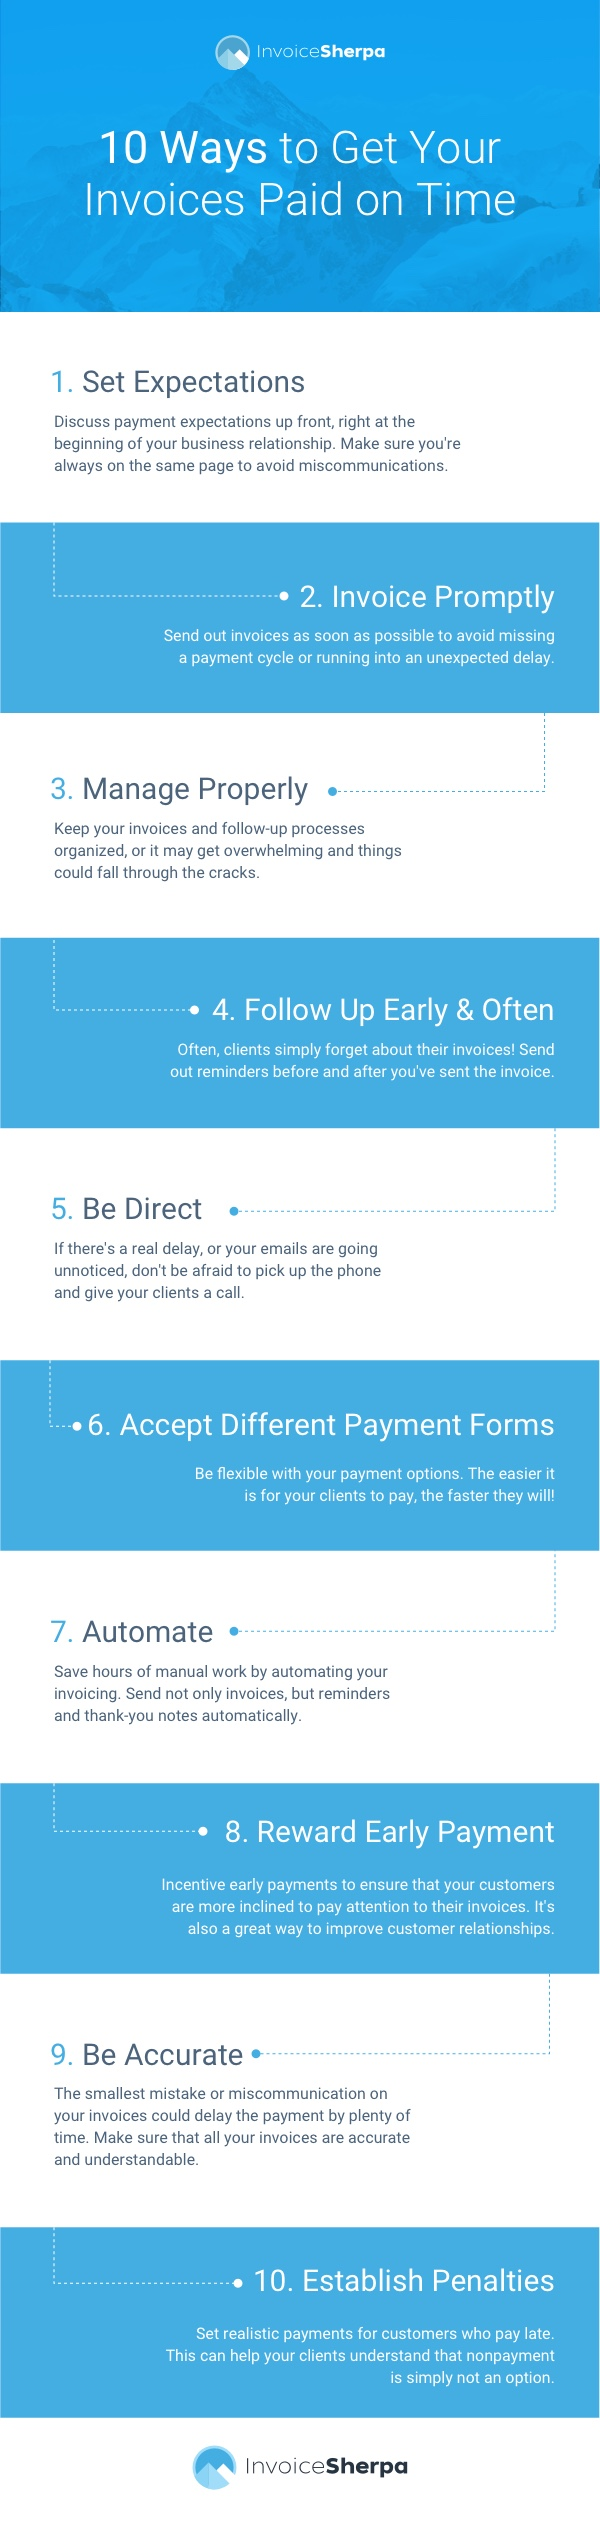 10 ways to get your invoices paid on time